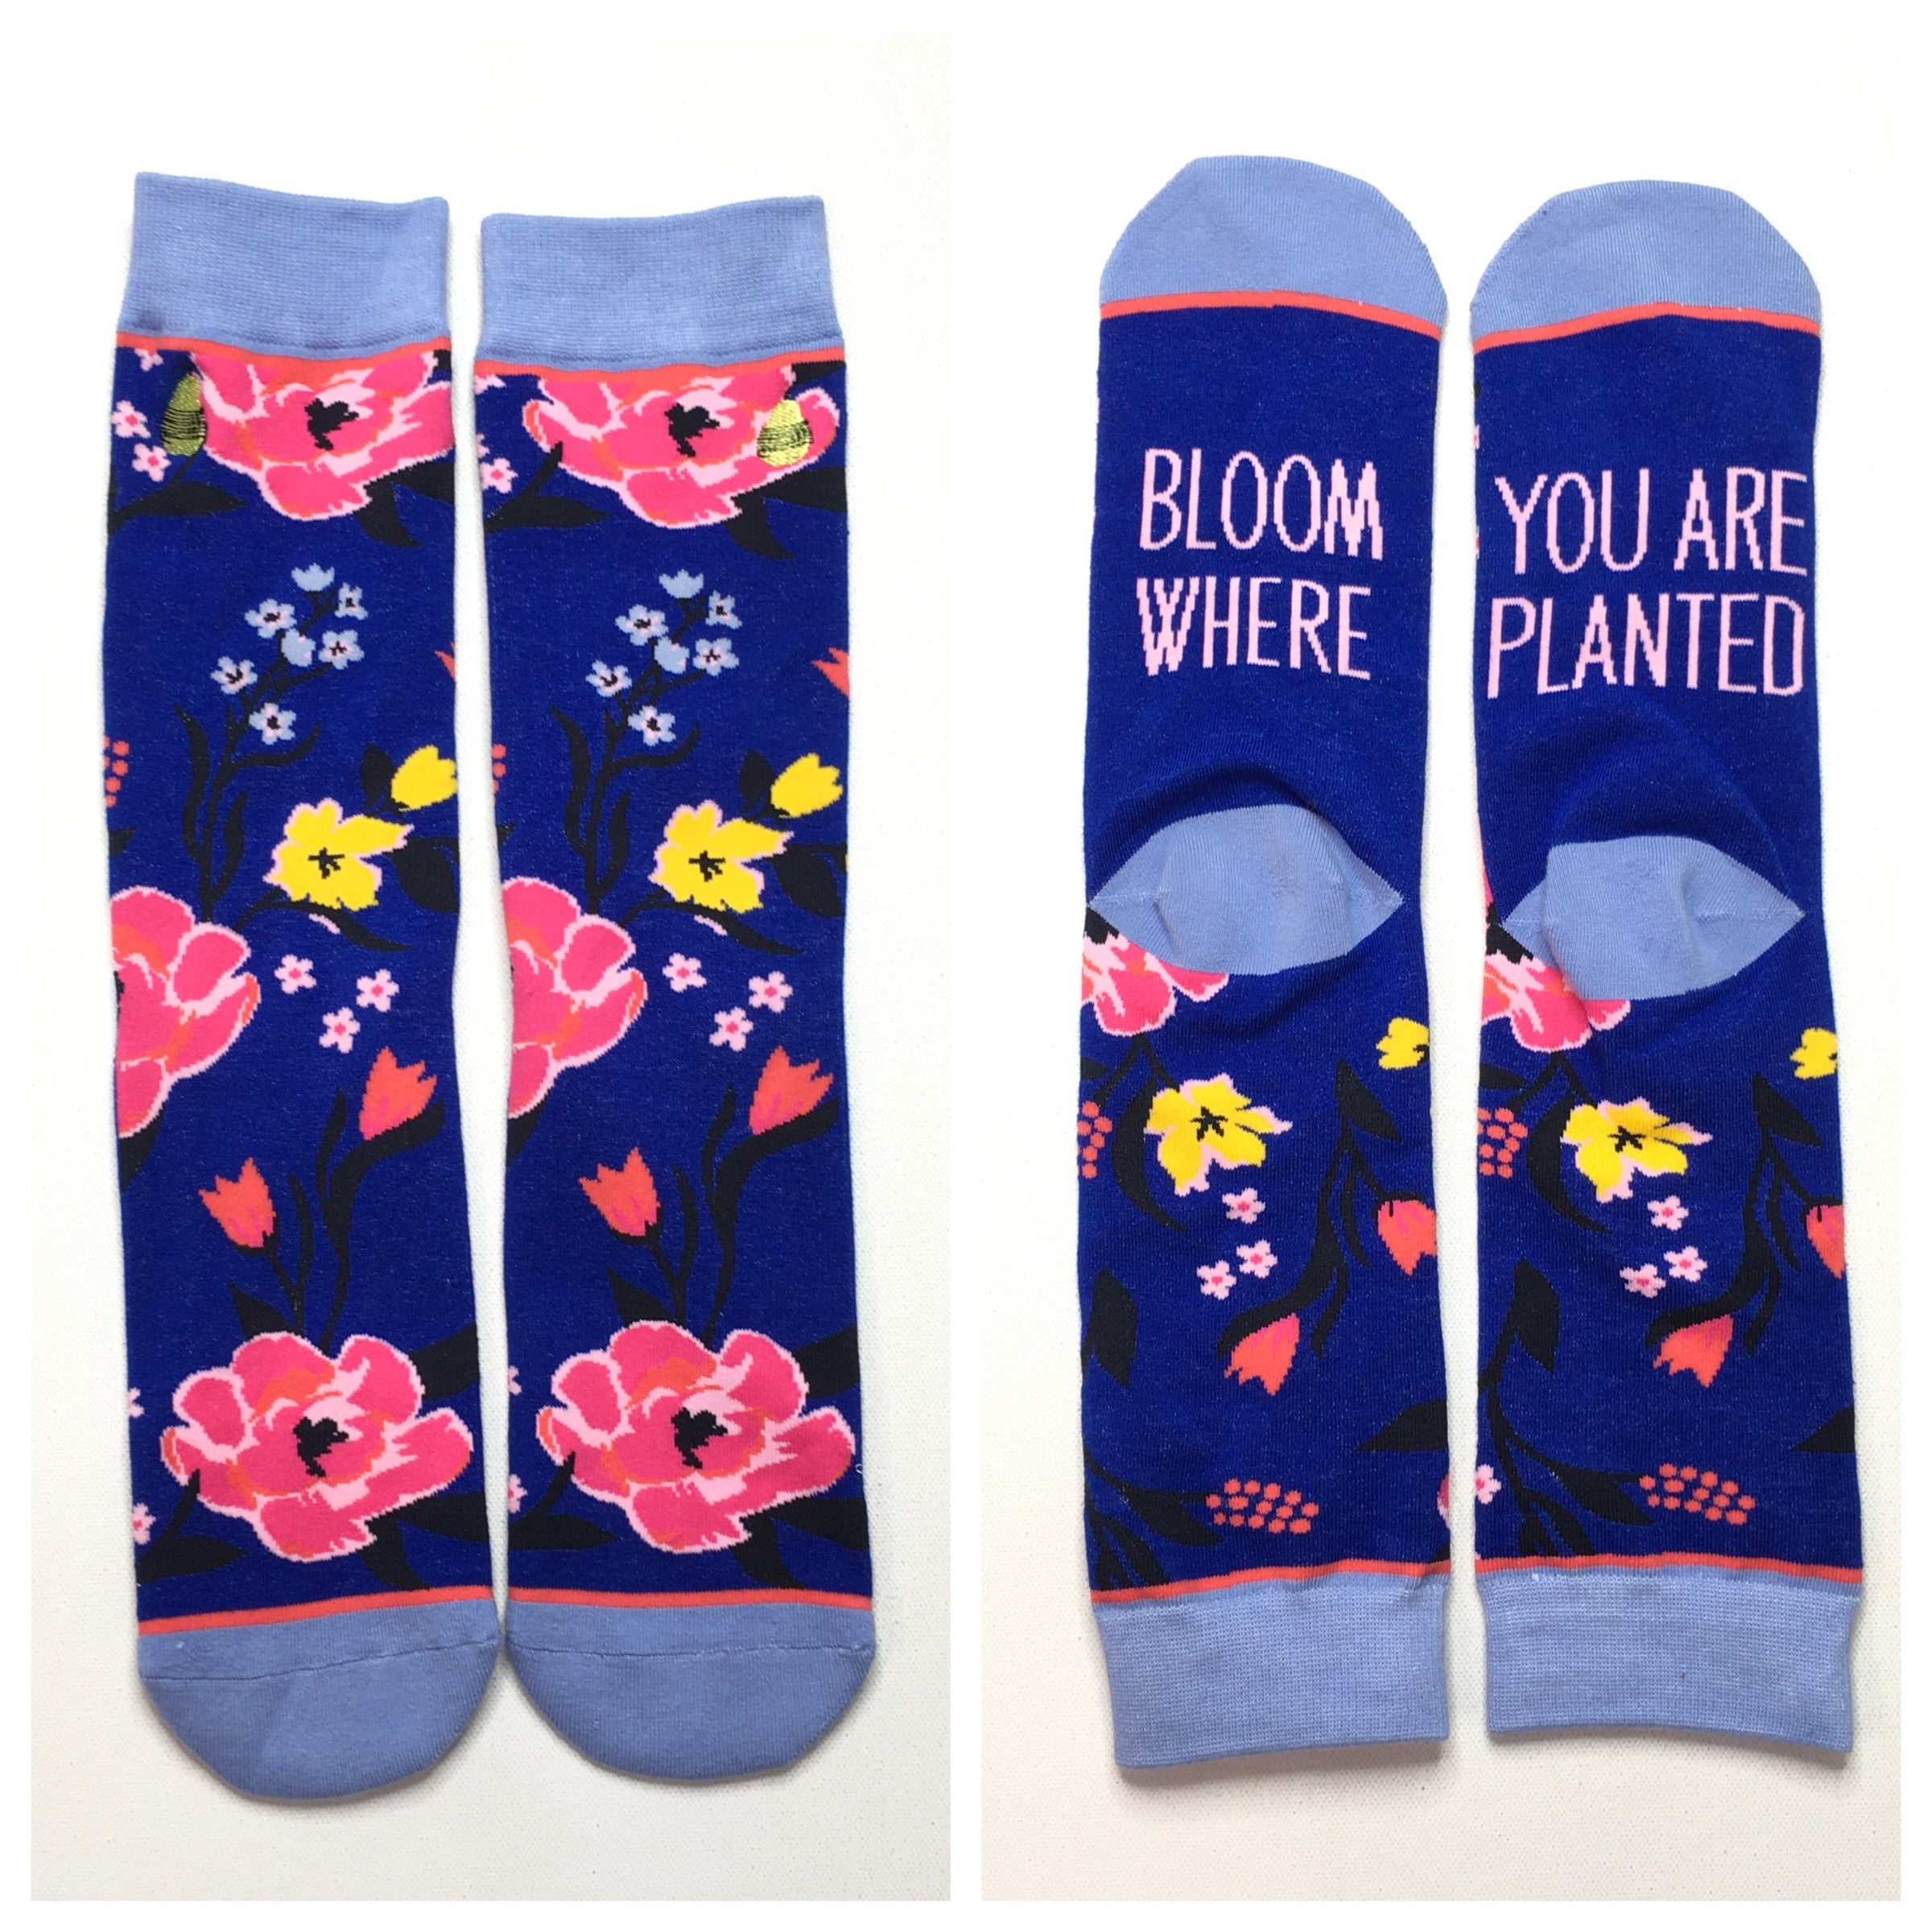 Bloom Where You Are Planted - KaraMarie Boutique